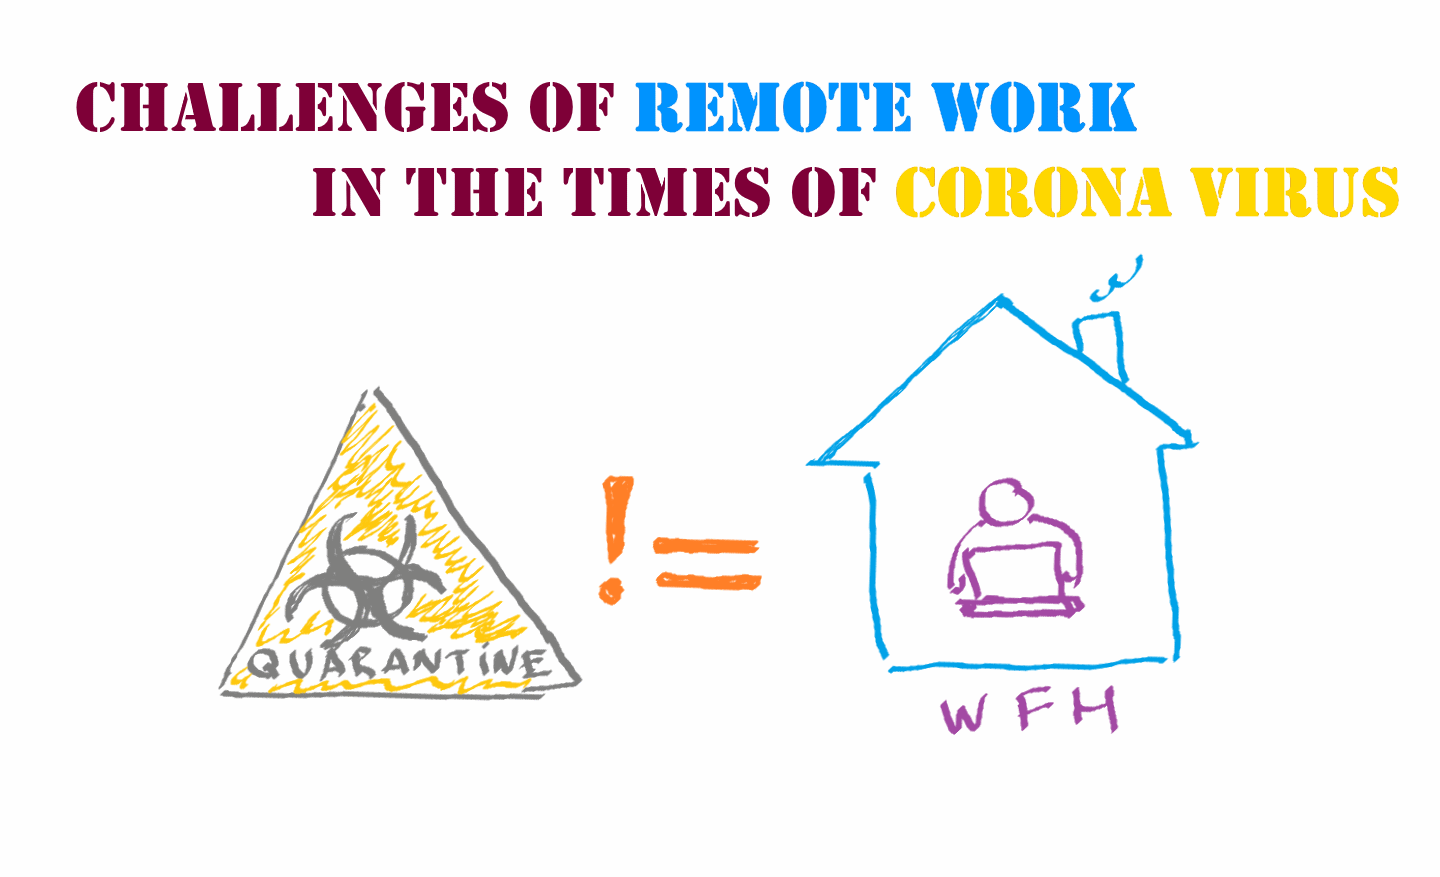 Challenges of remote work in the times of Corona Virus